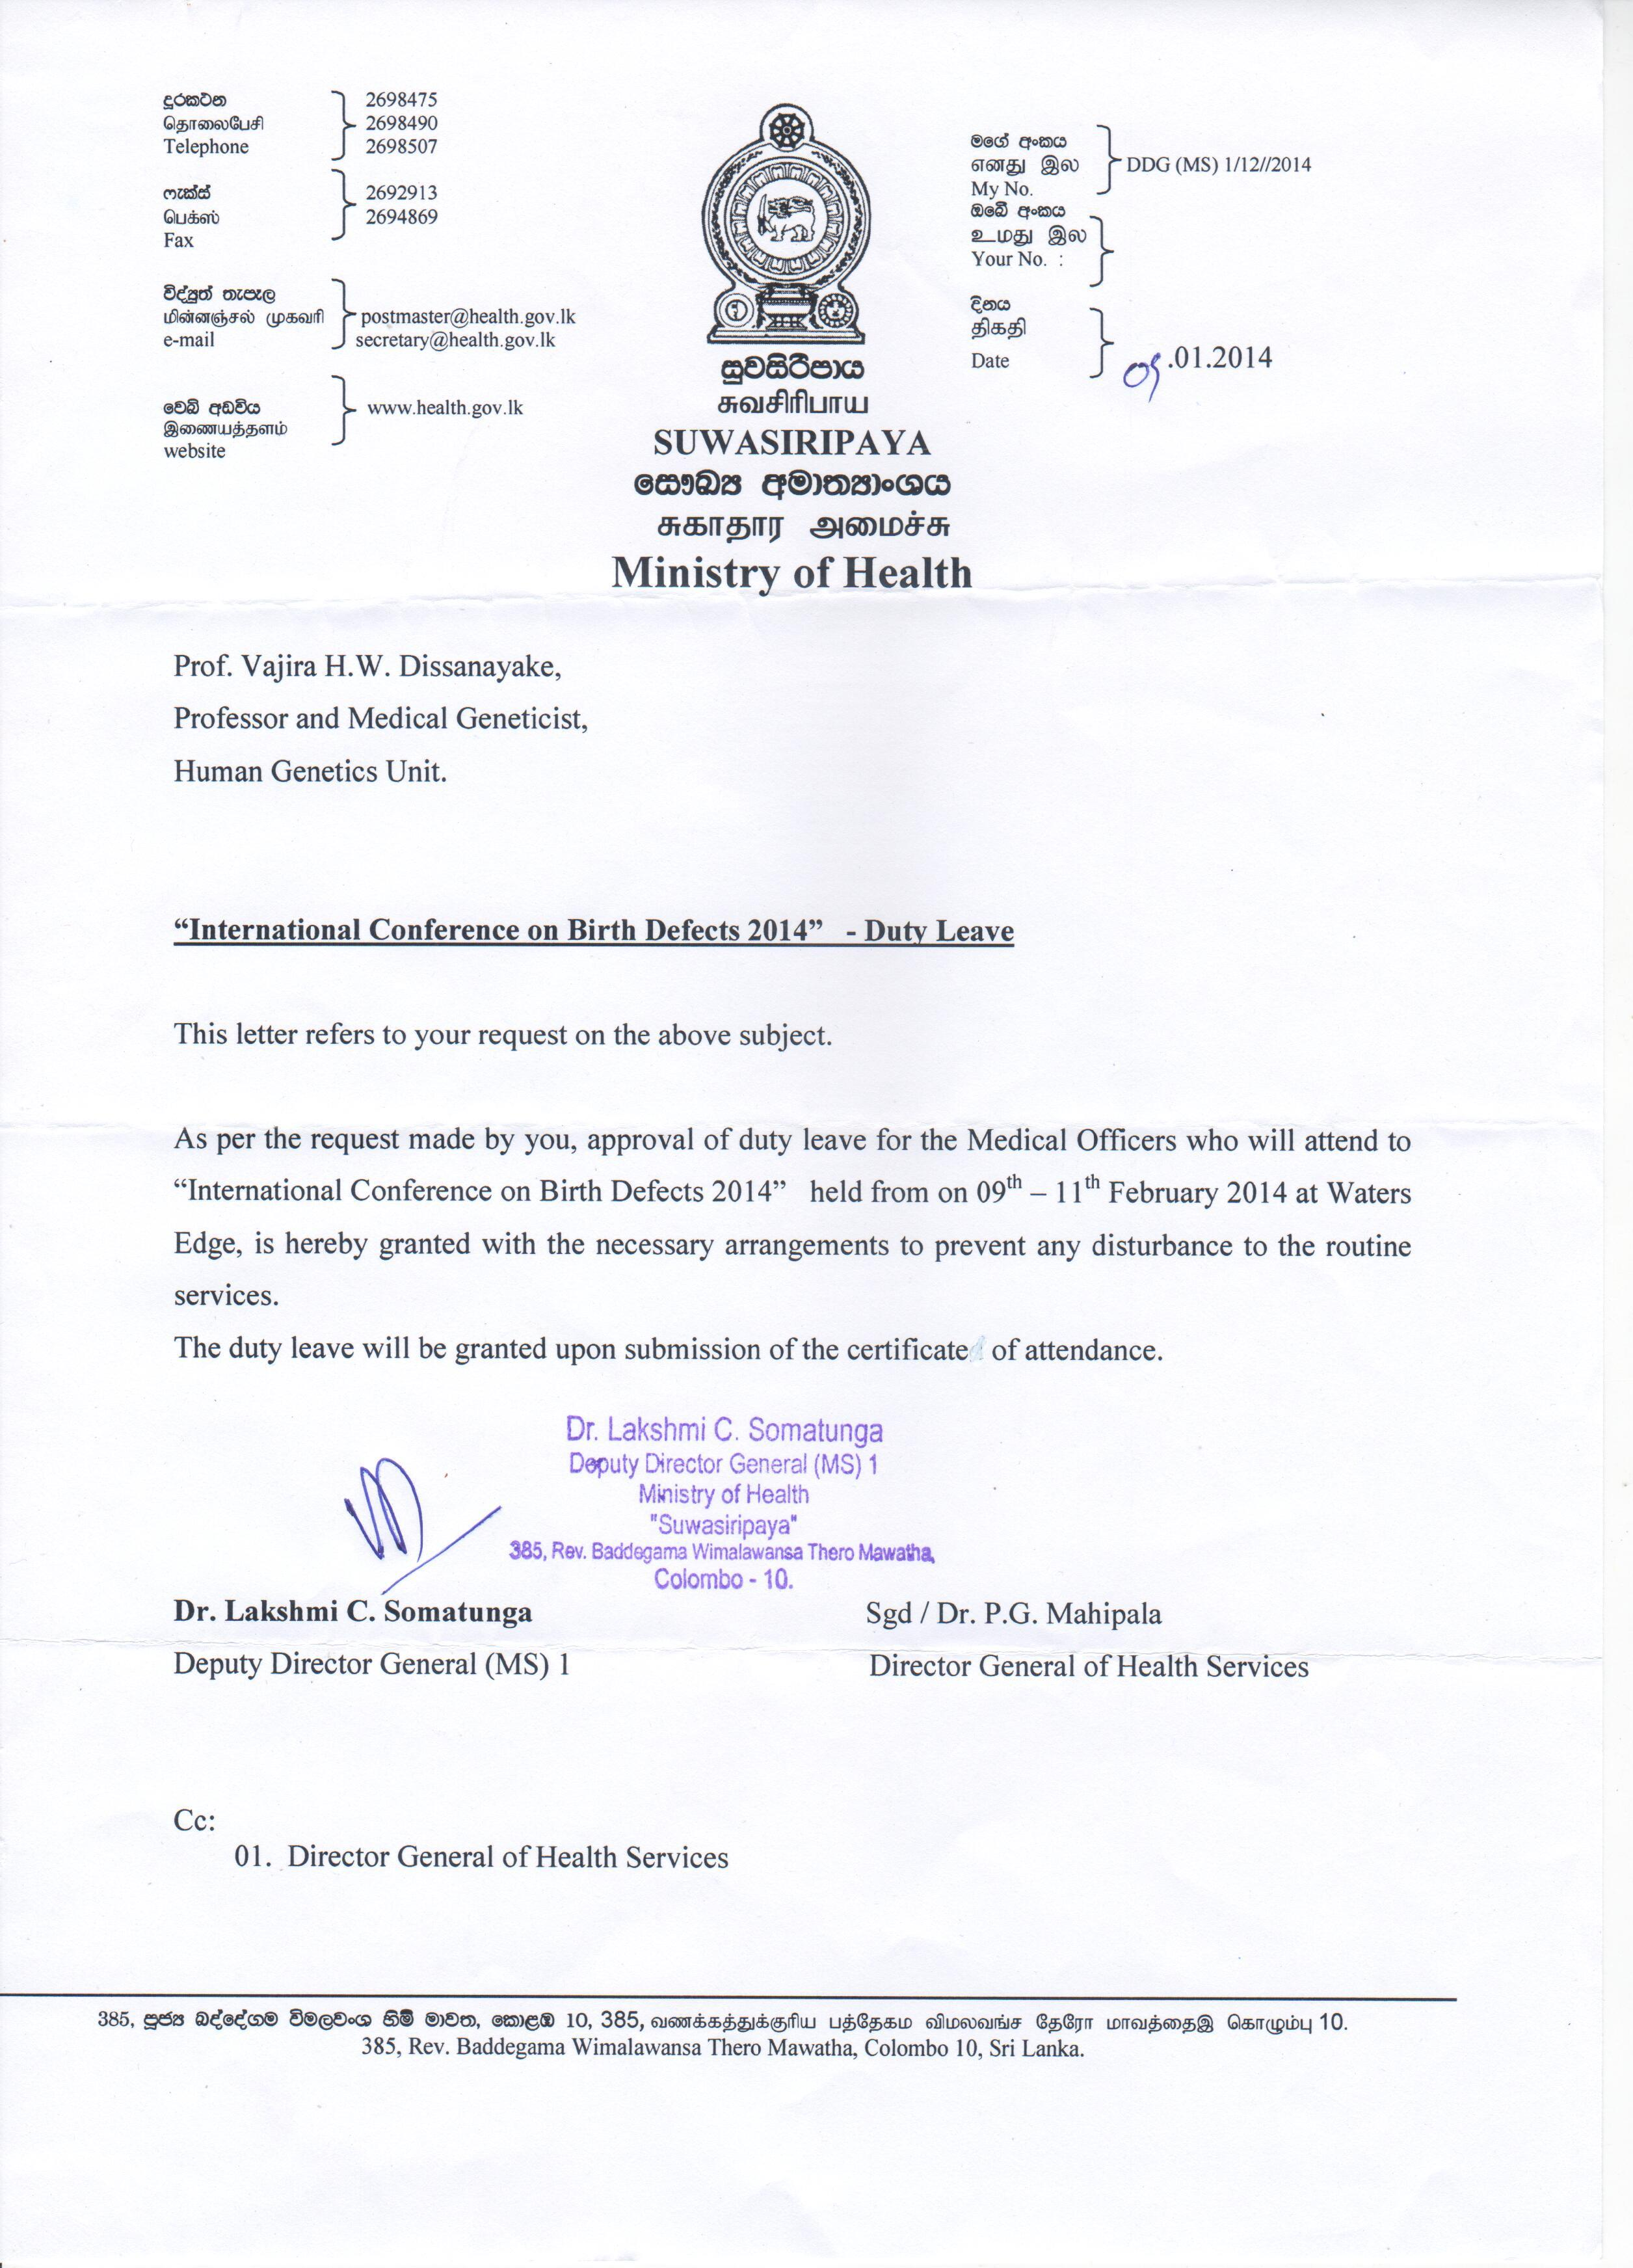 Application Letter For Personal Leave